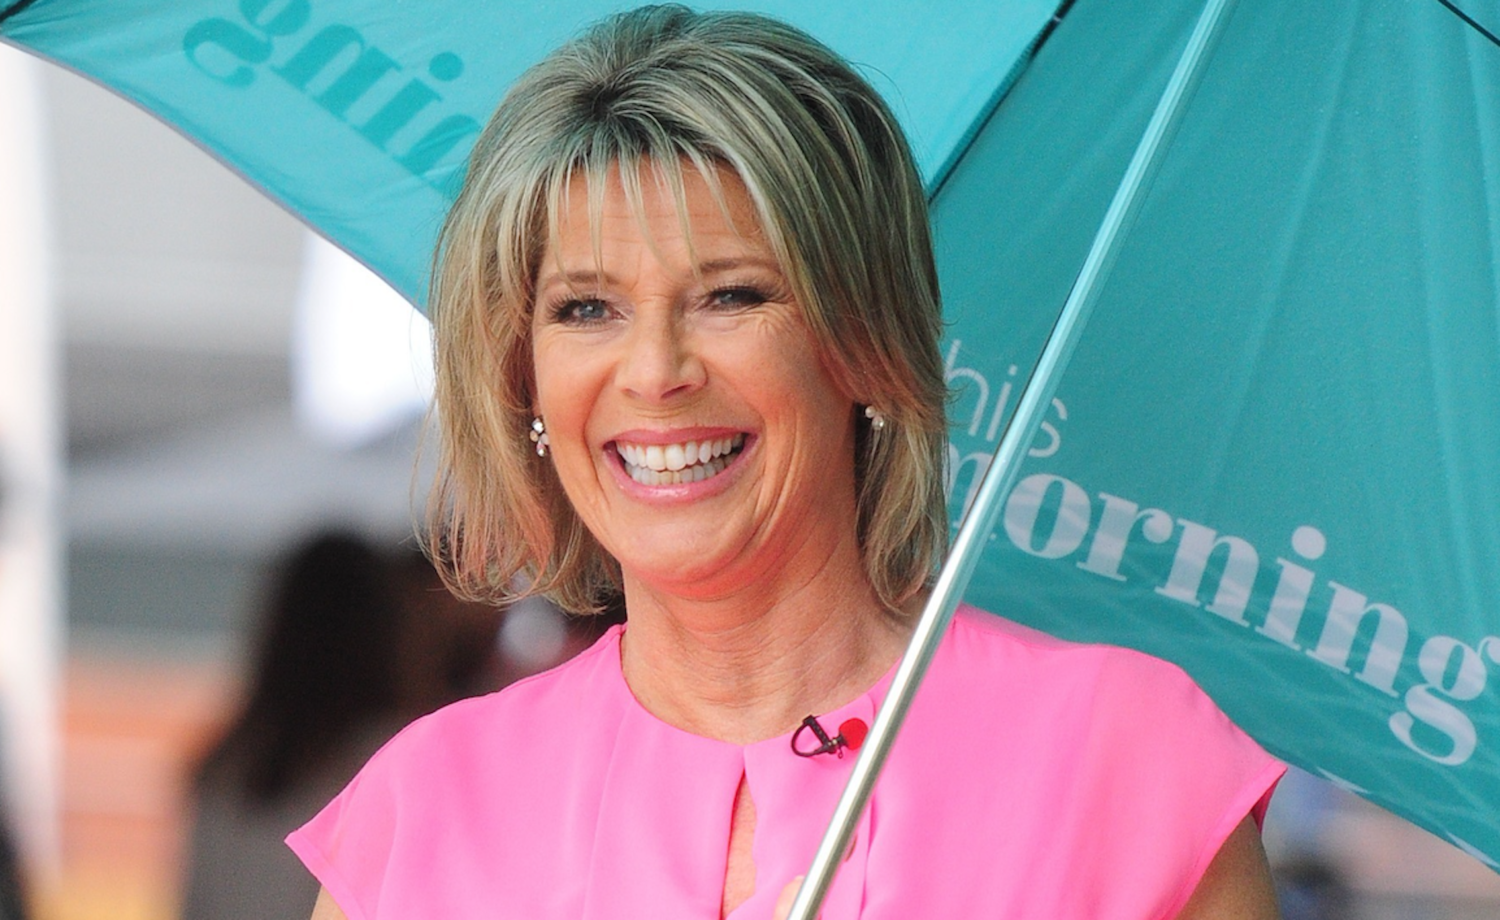 Ruth Langsford 'hasn't changed in 20 years', say fans as she shares throwback picture